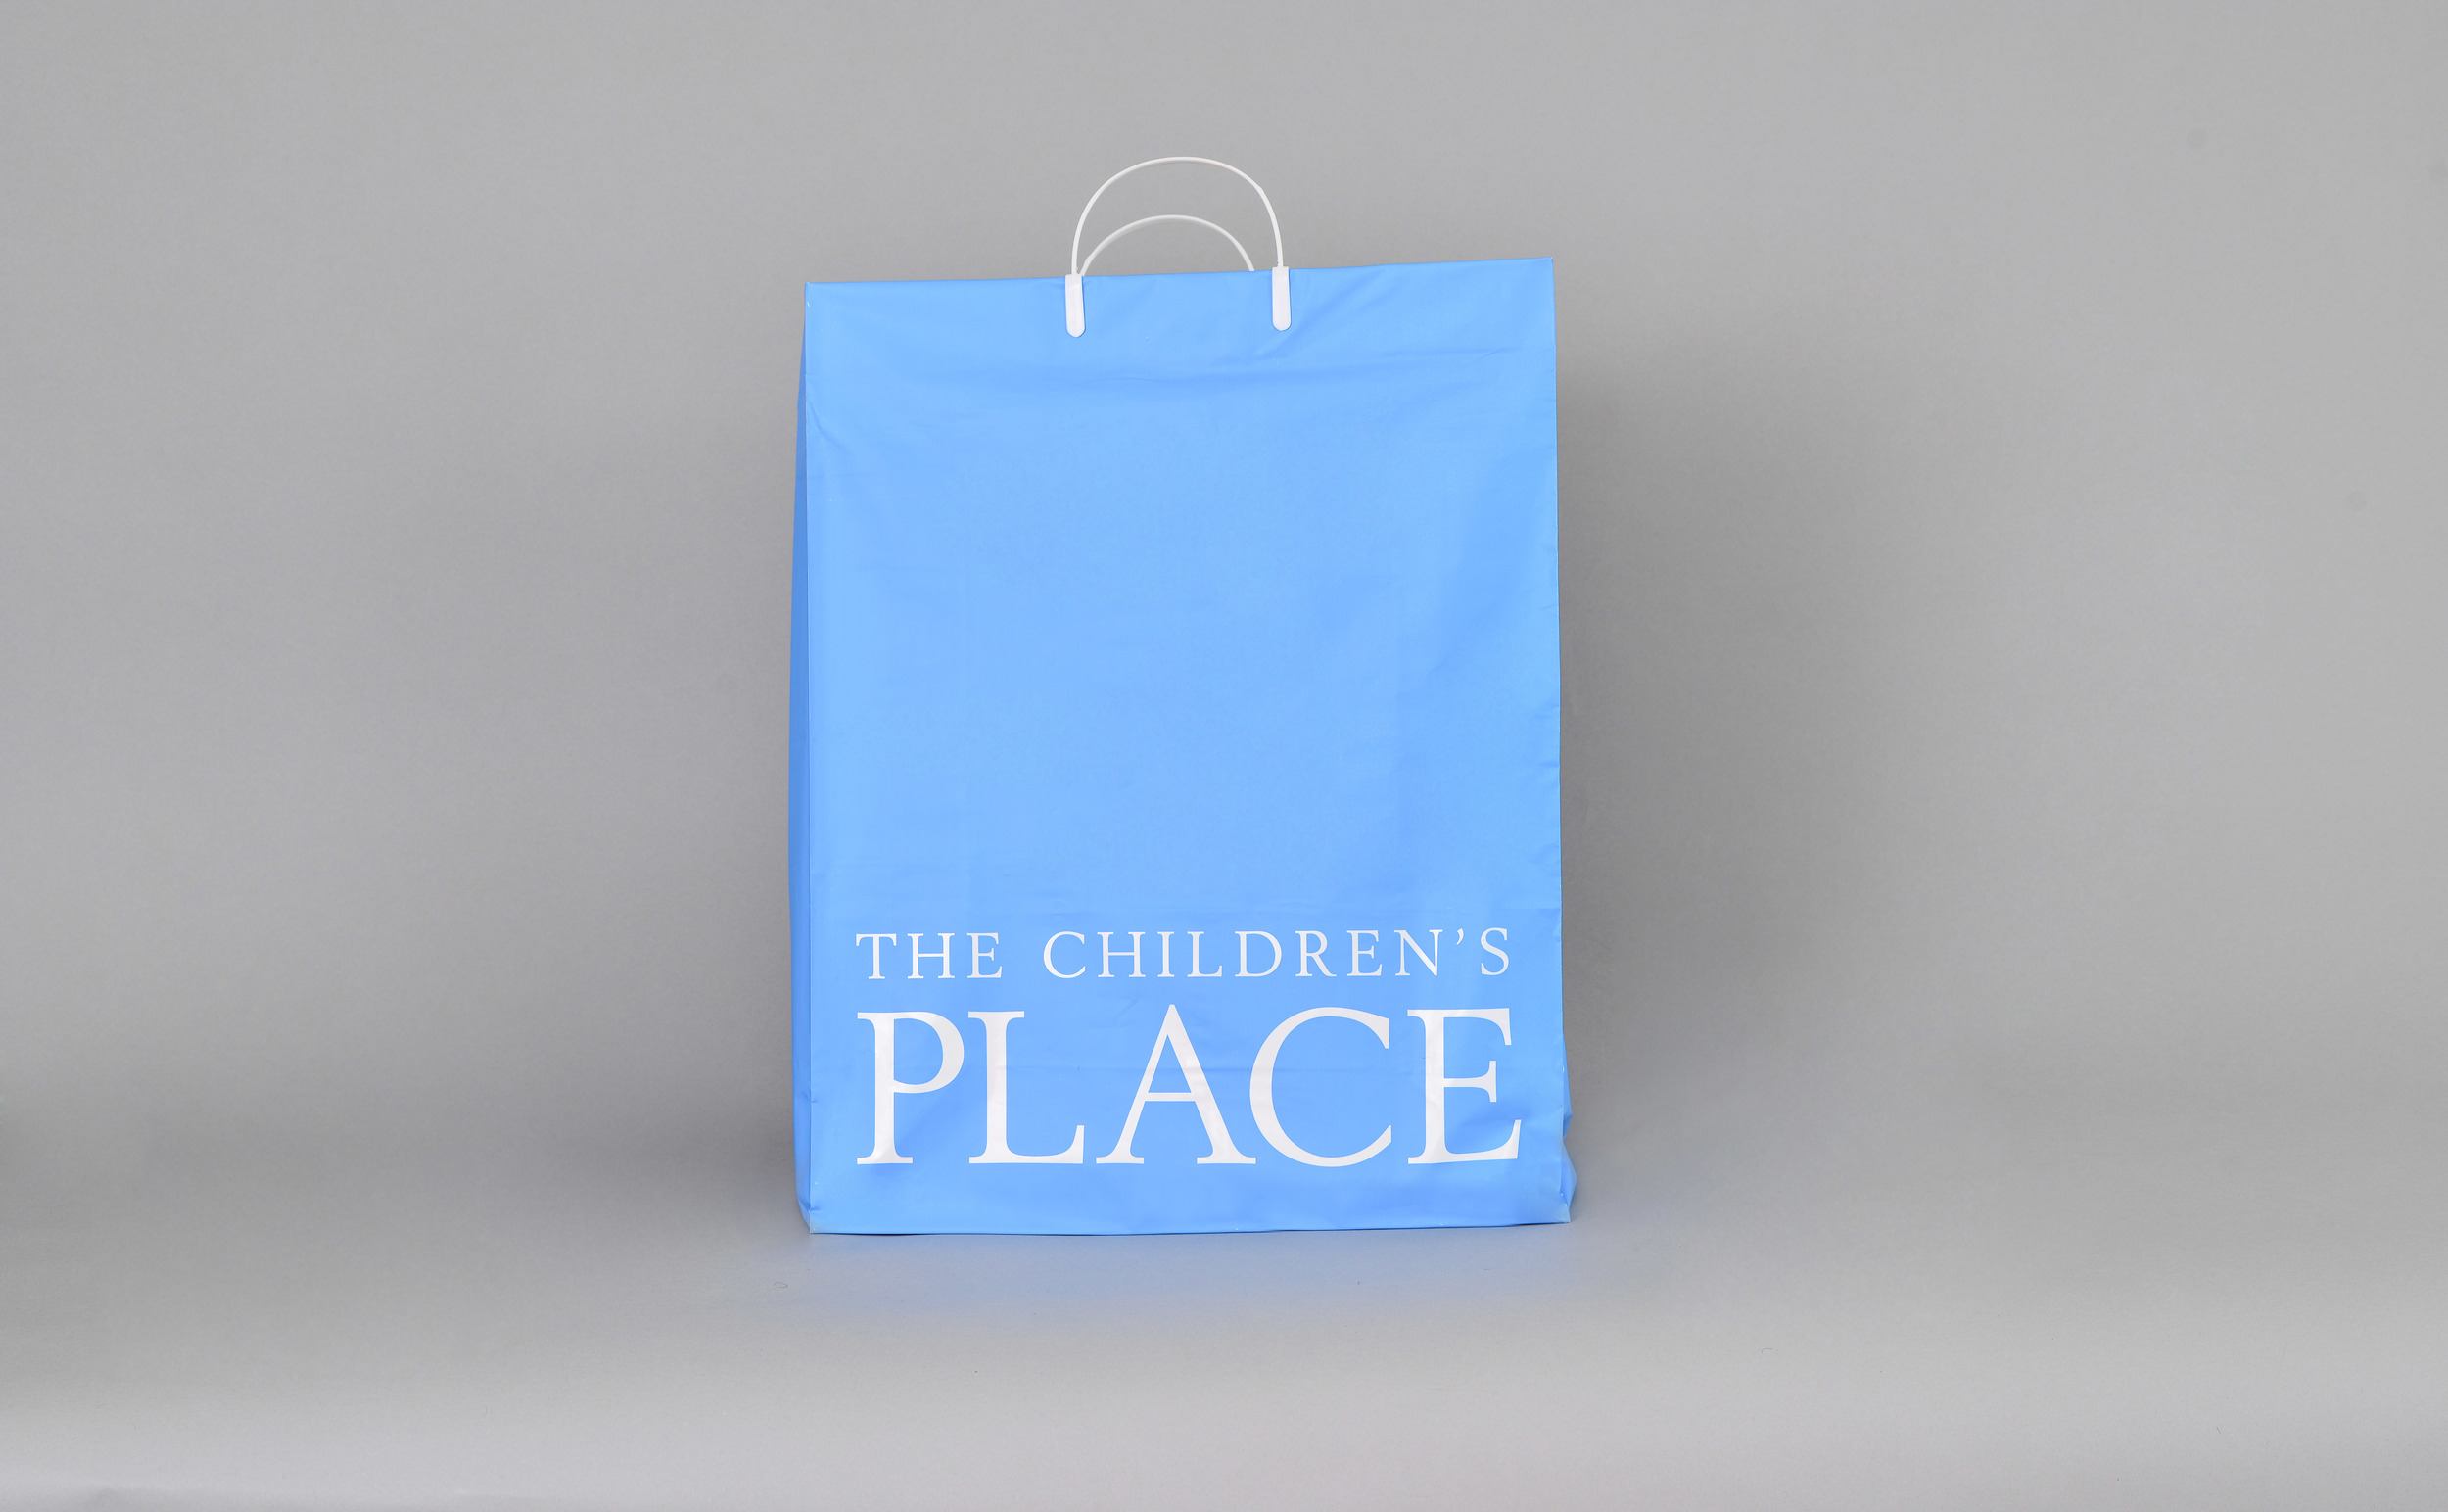 CPI Packaging - The Children's Place